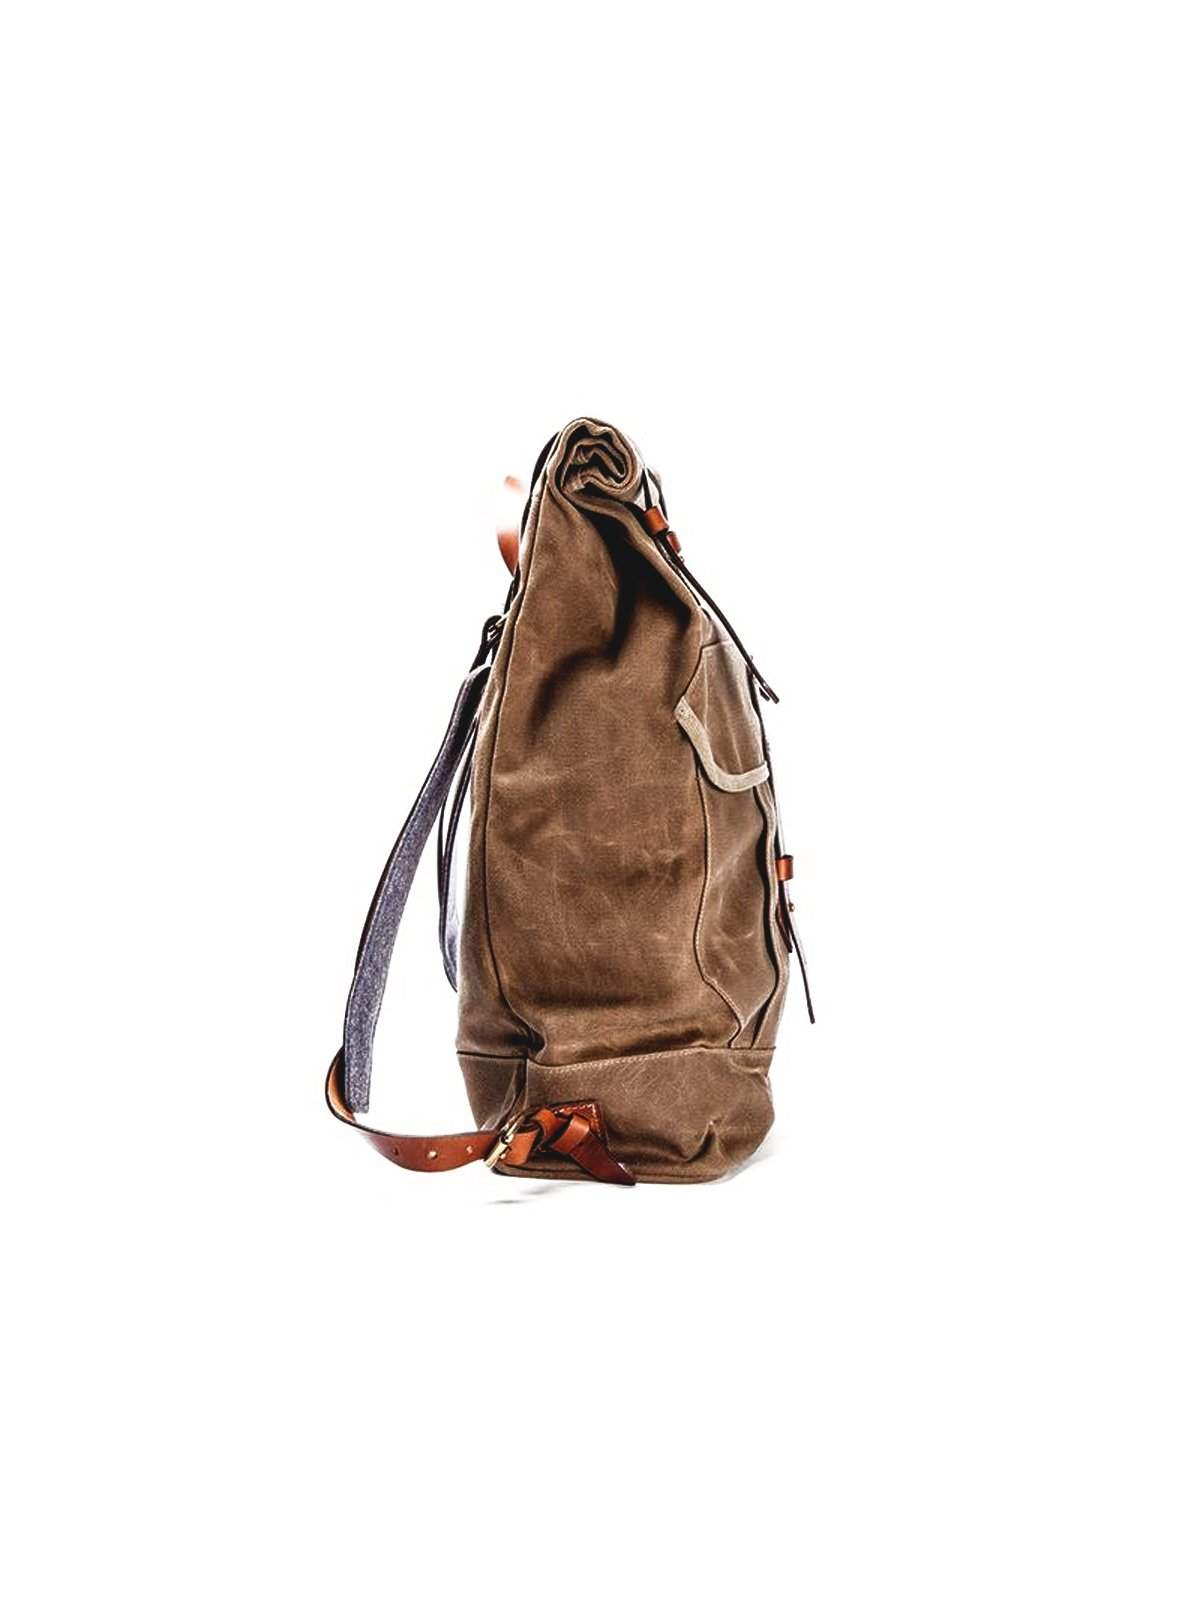 d69a83a59 Tanner Goods Wilderness Rucksack Waxed Field Tan - MORE by Morello -  Indonesia